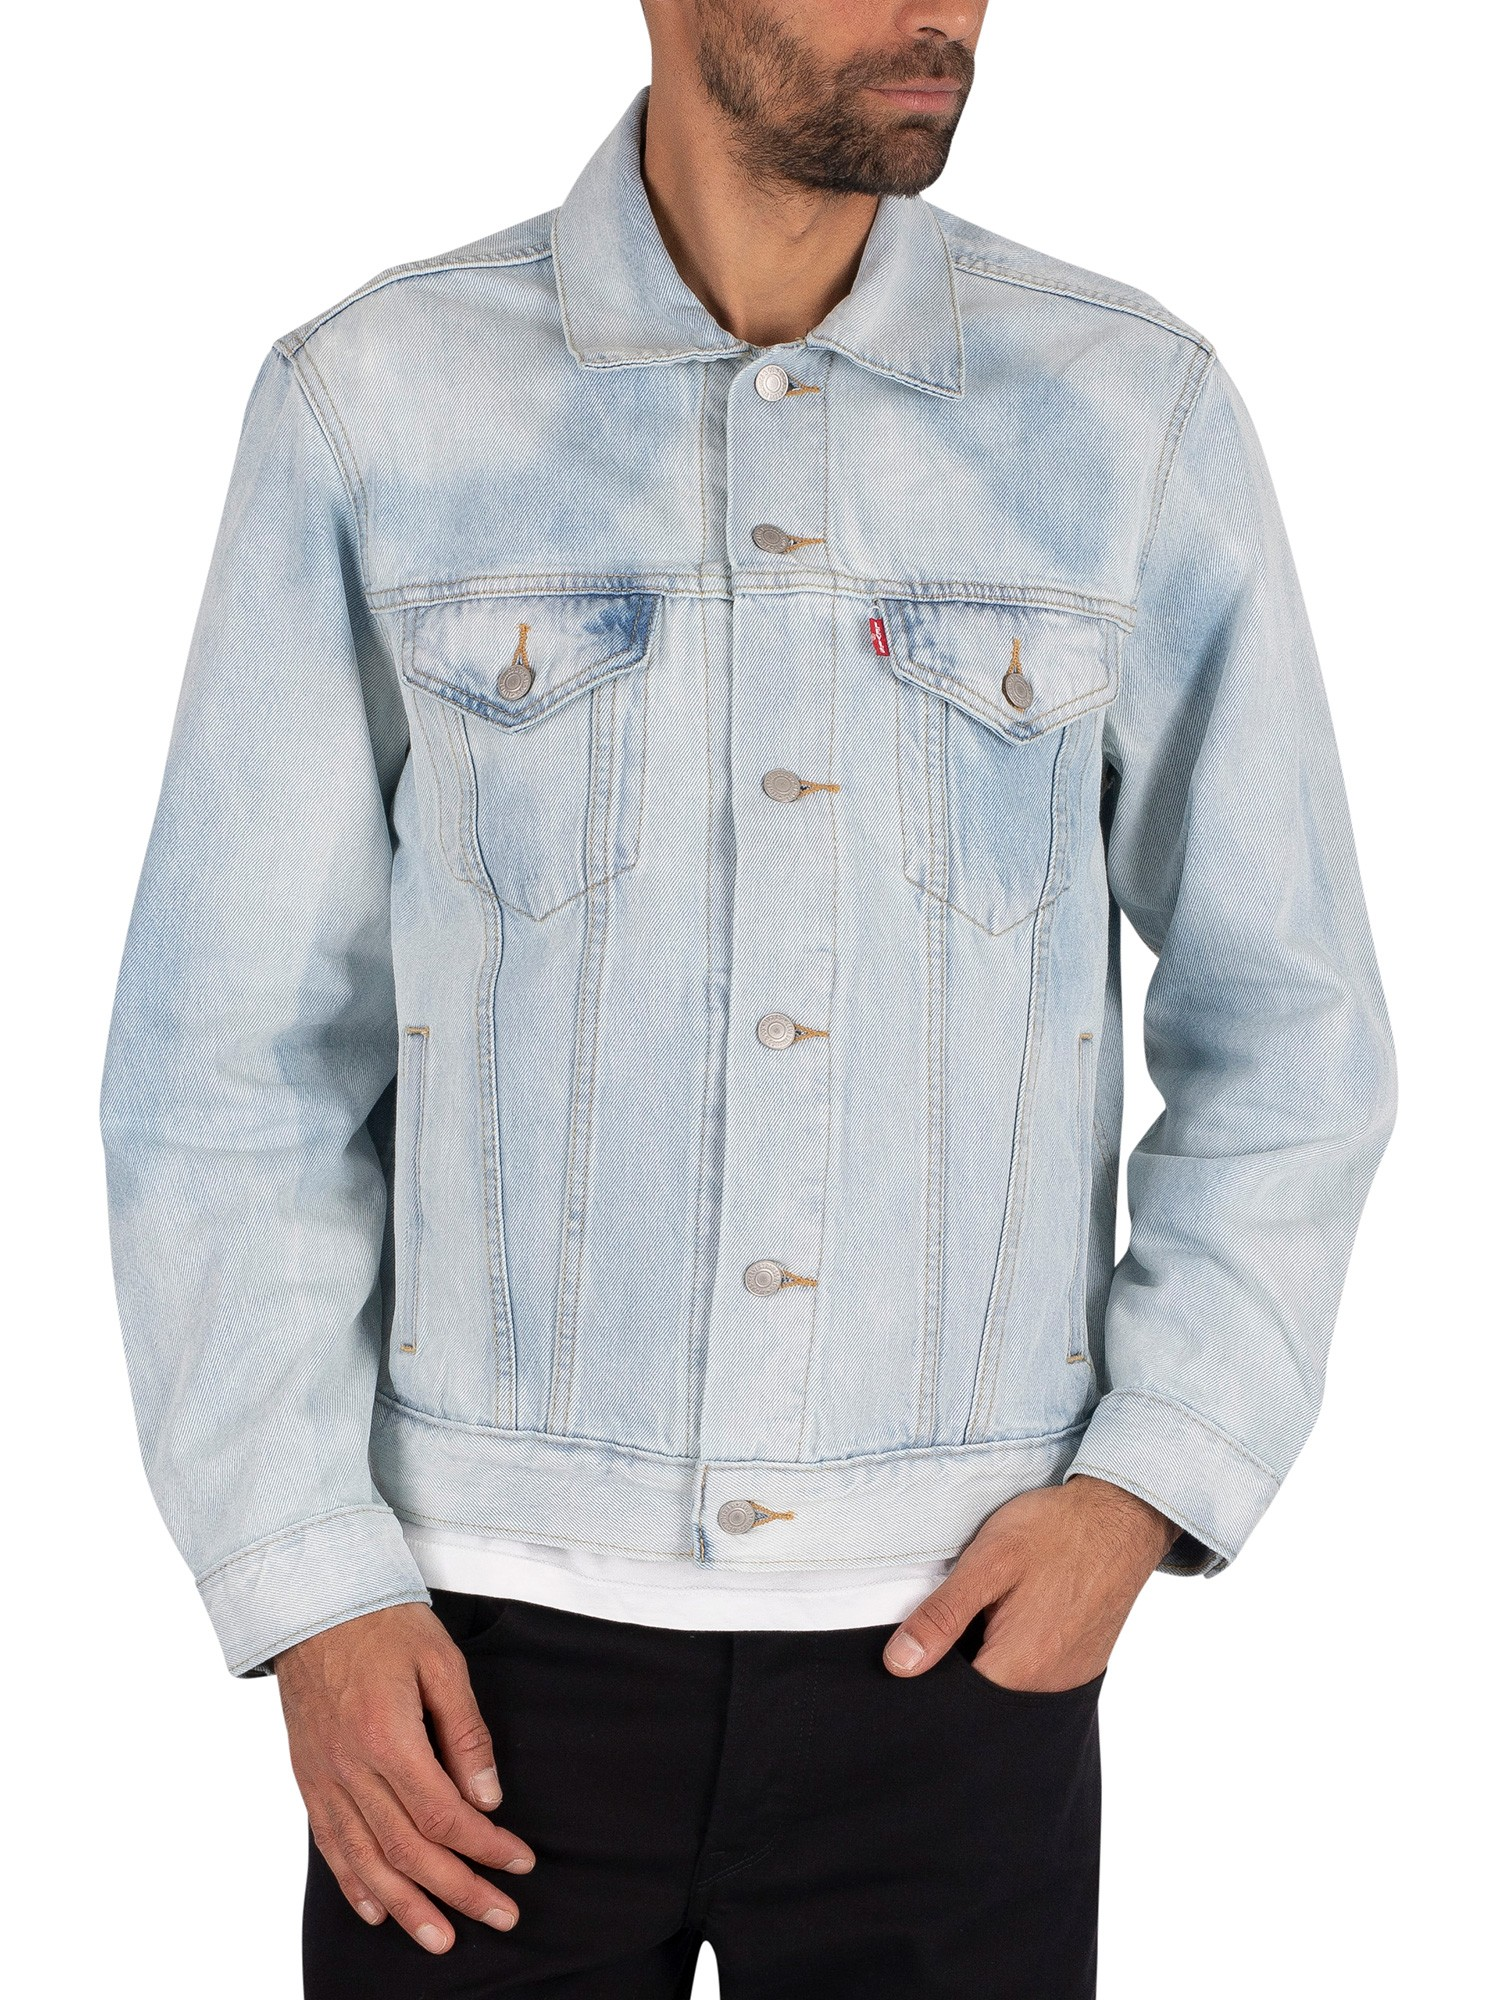 Levi's Vintage Fit Trucker Jacket - Curbside